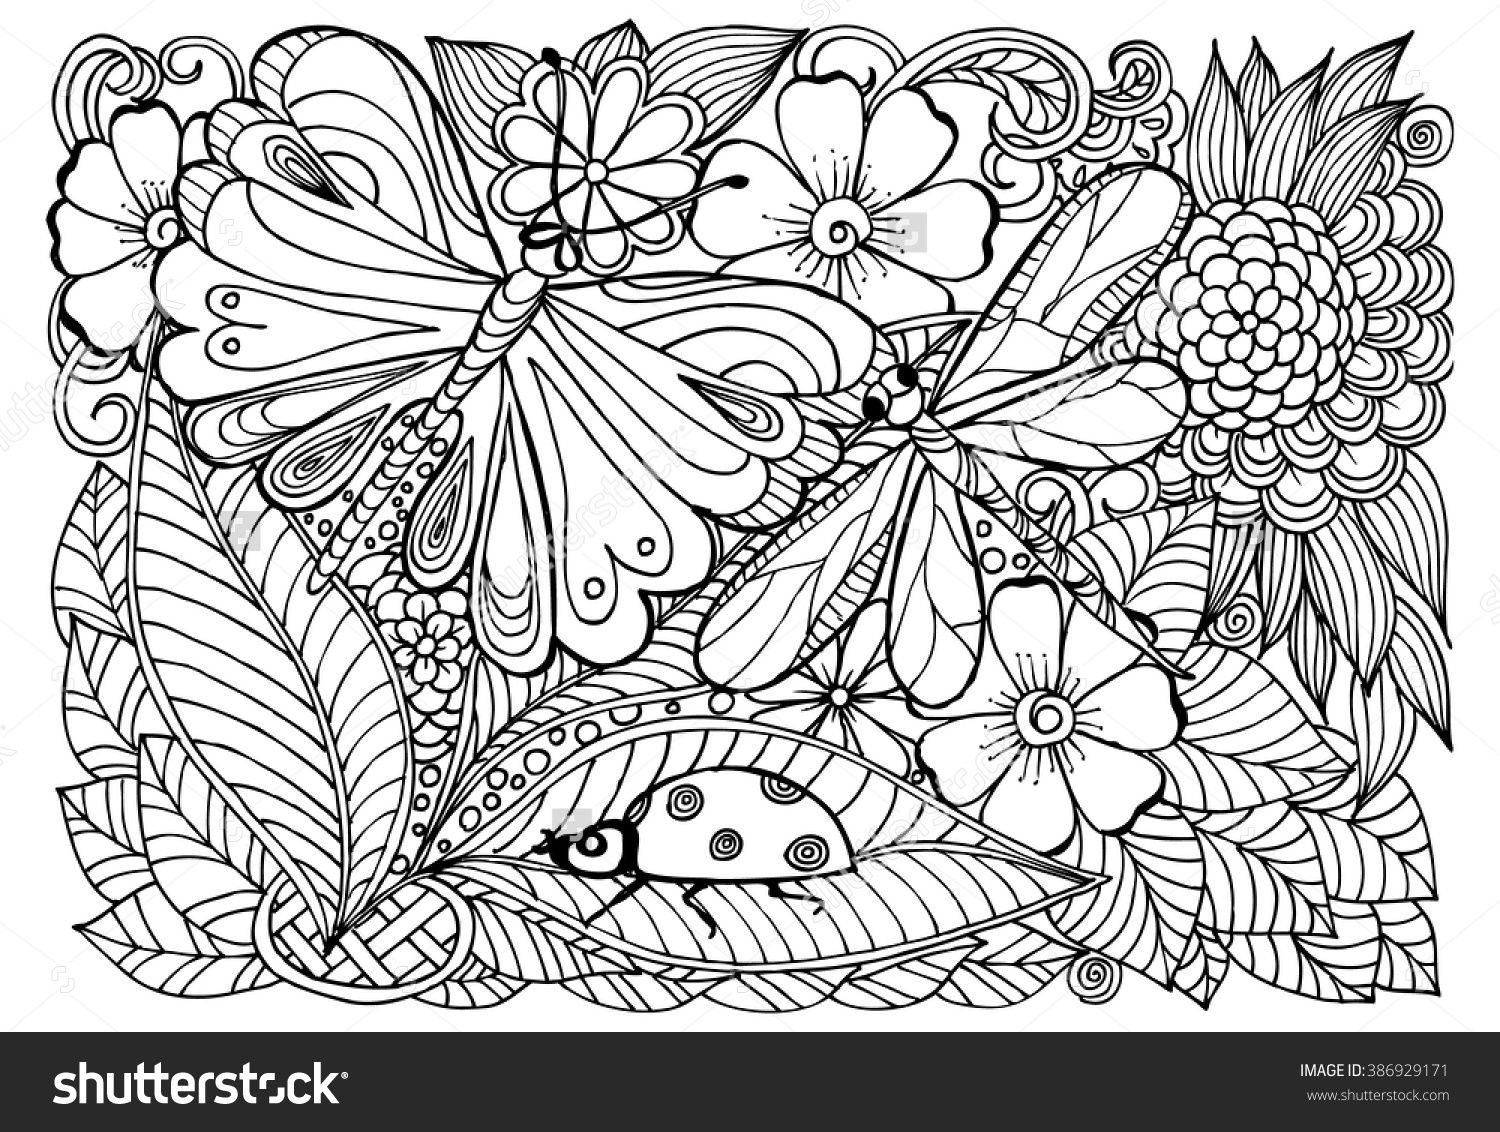 Vector doodle flowers in black and white. Floral pattern with ...